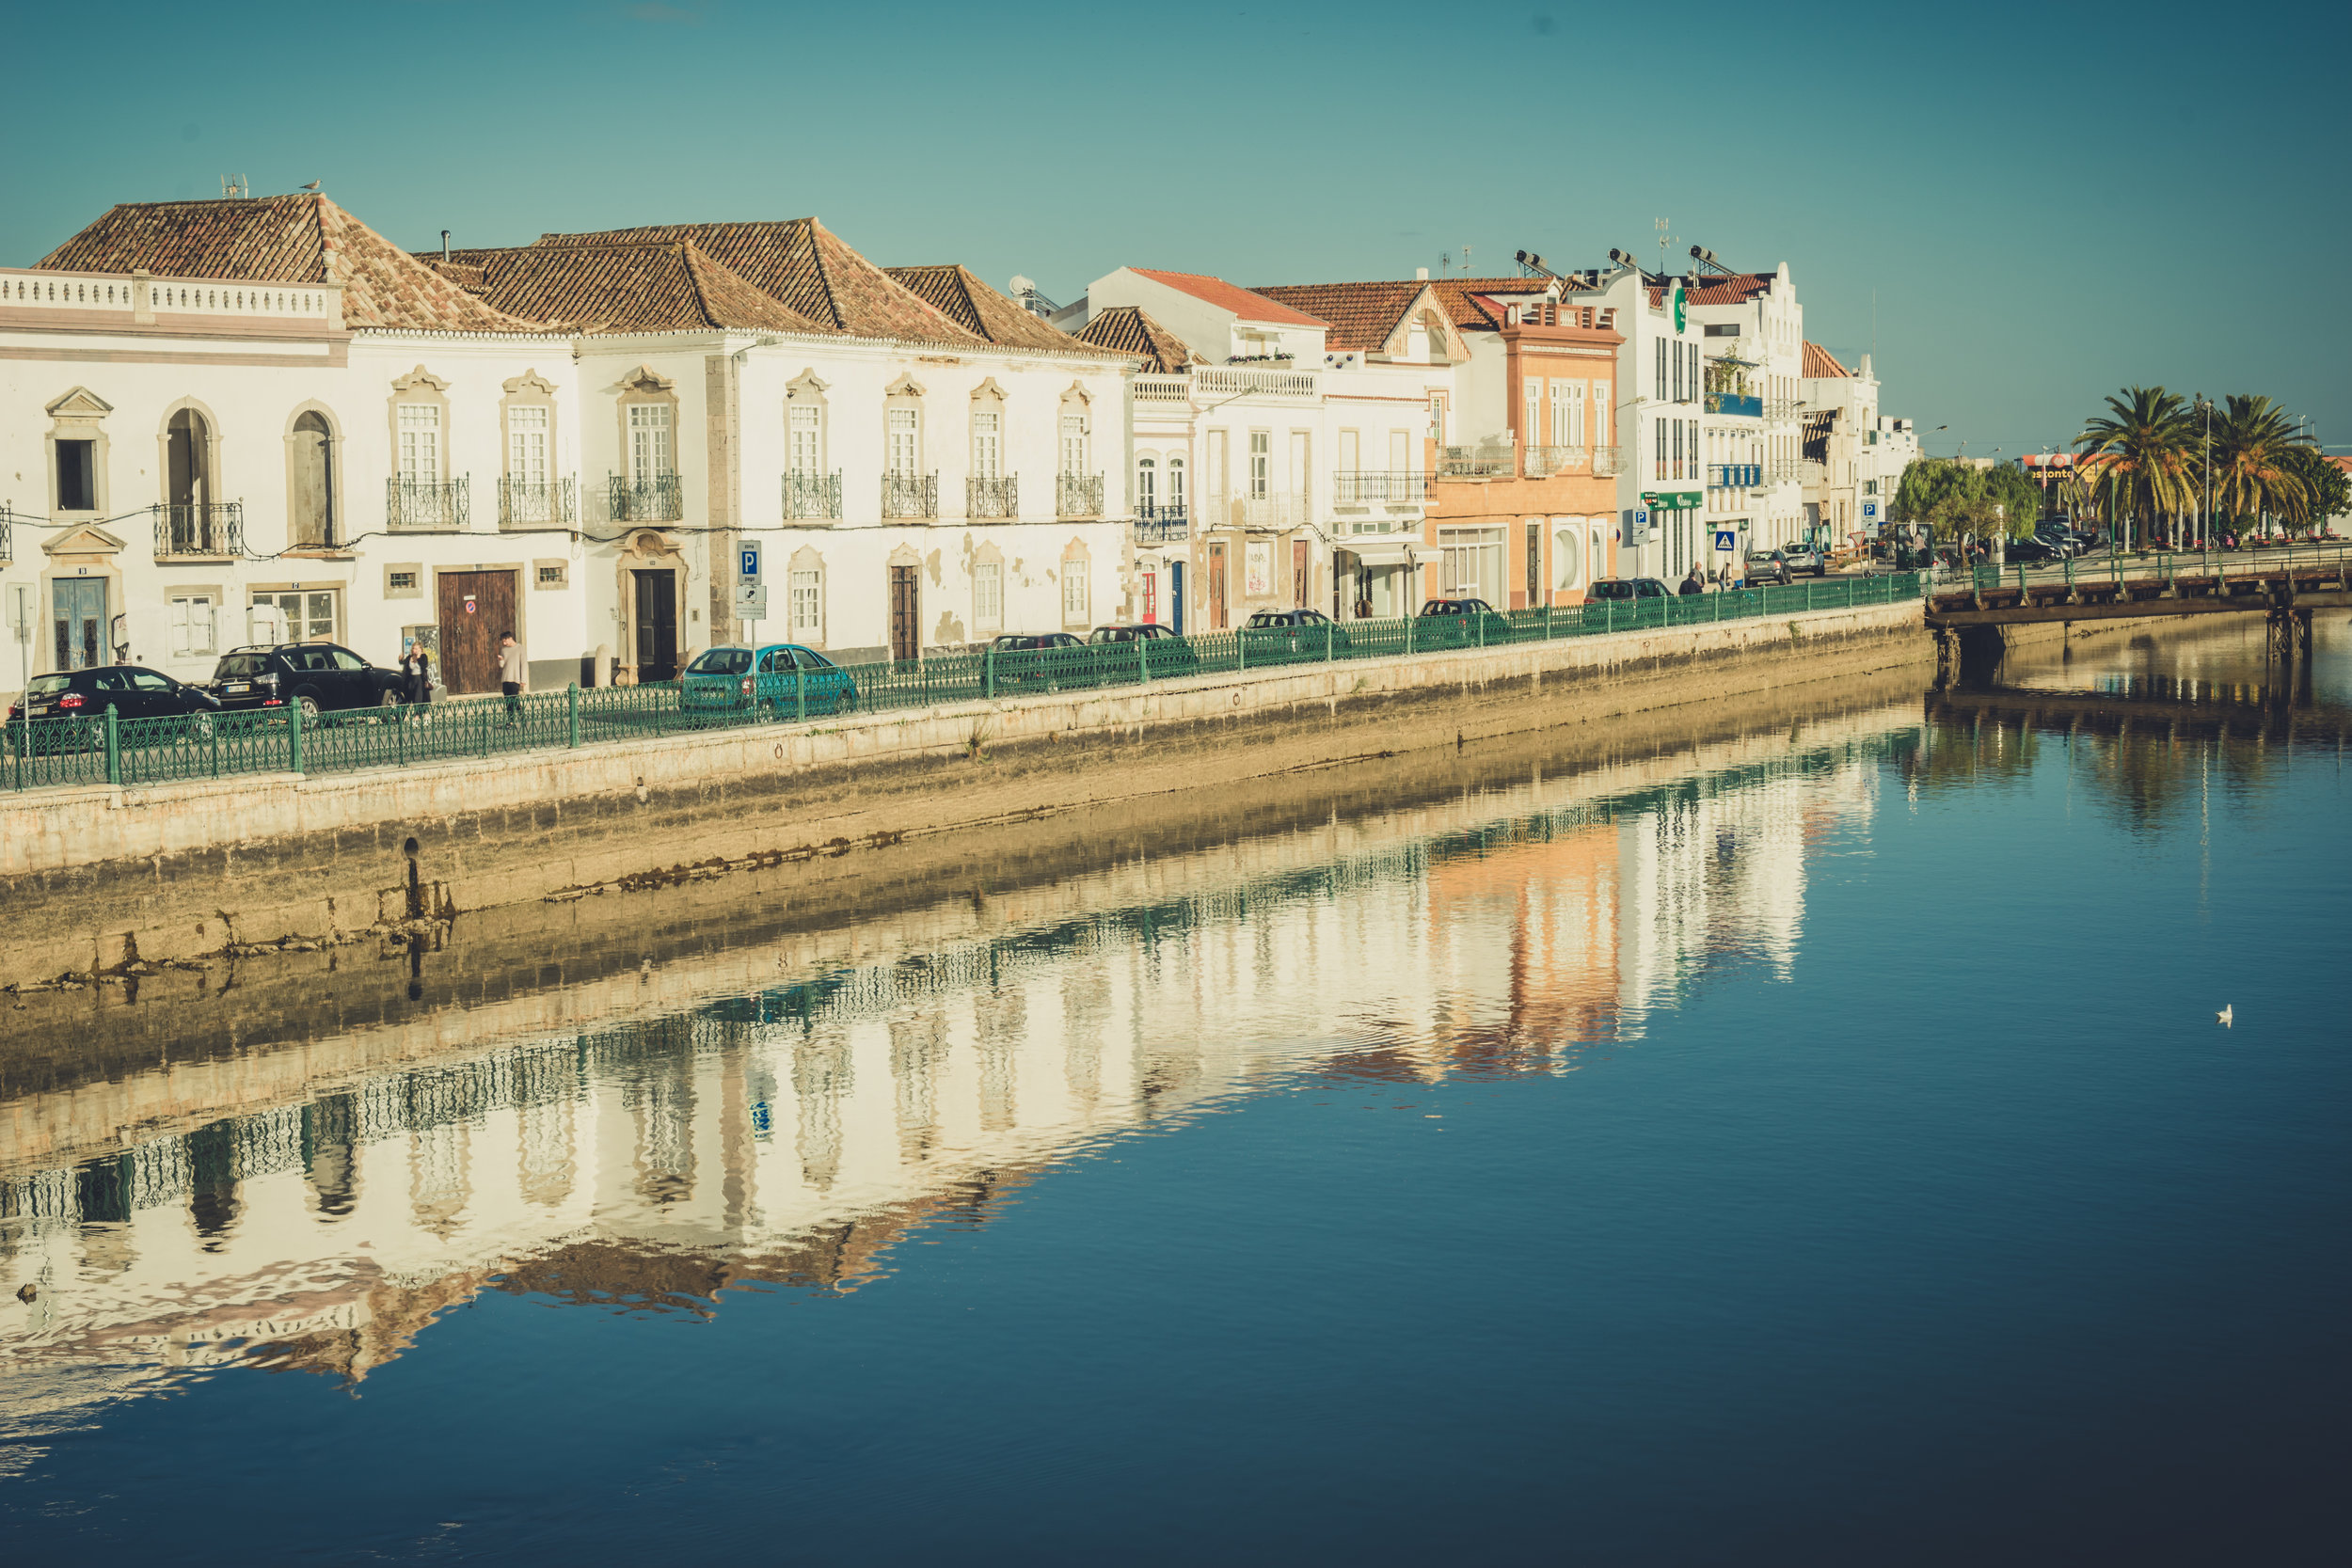 Tavira Roman Bridge. Old town Tavira. Street scene in Tavira. Algarve. River reflections.JPG